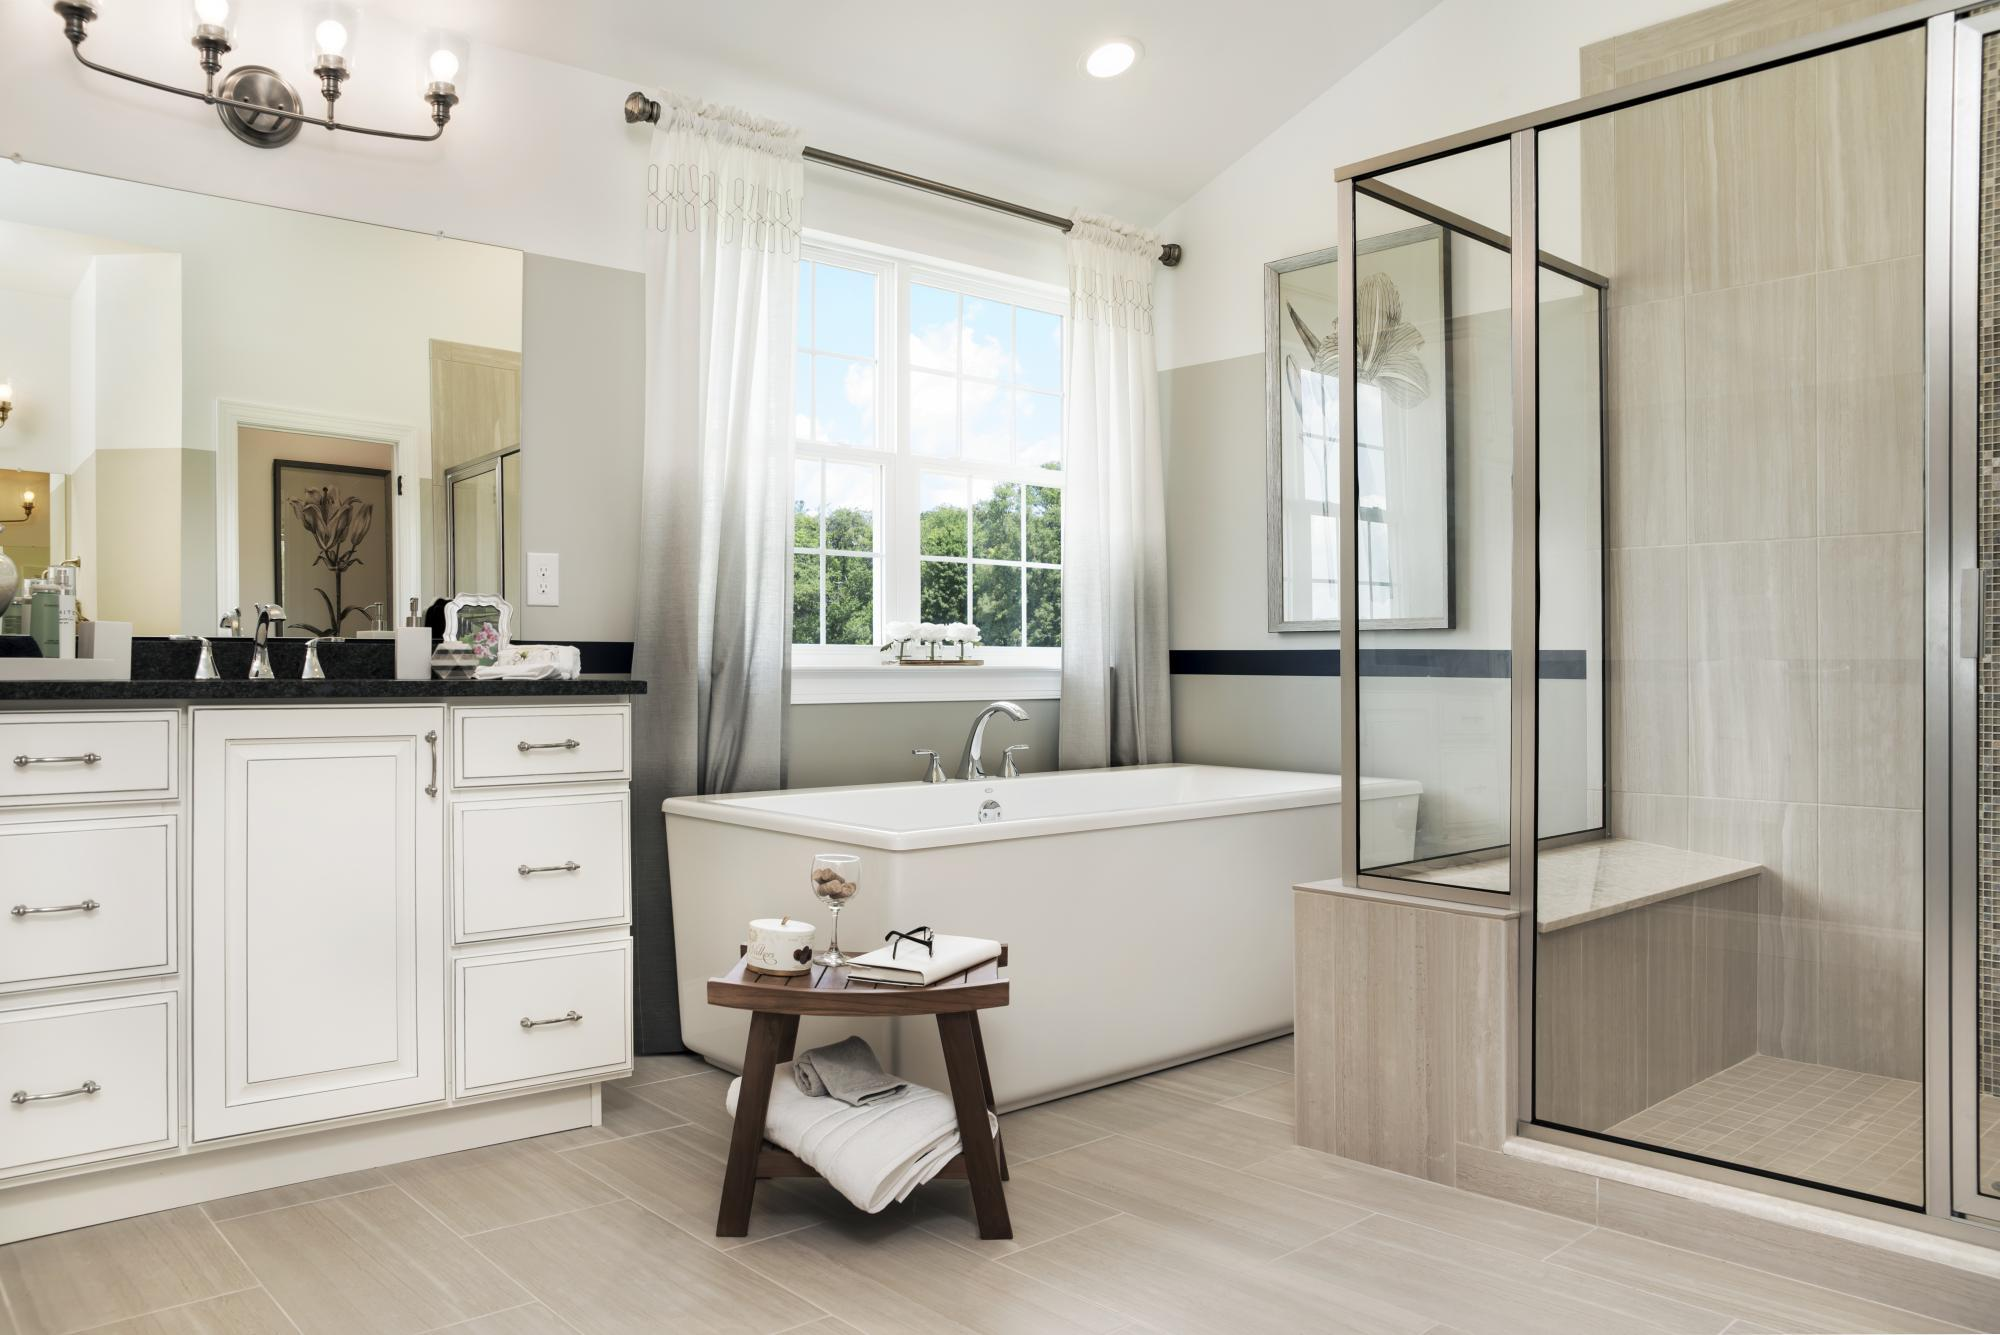 Bathroom featured in The Monroe By Hallmark Homes Group in Philadelphia, PA